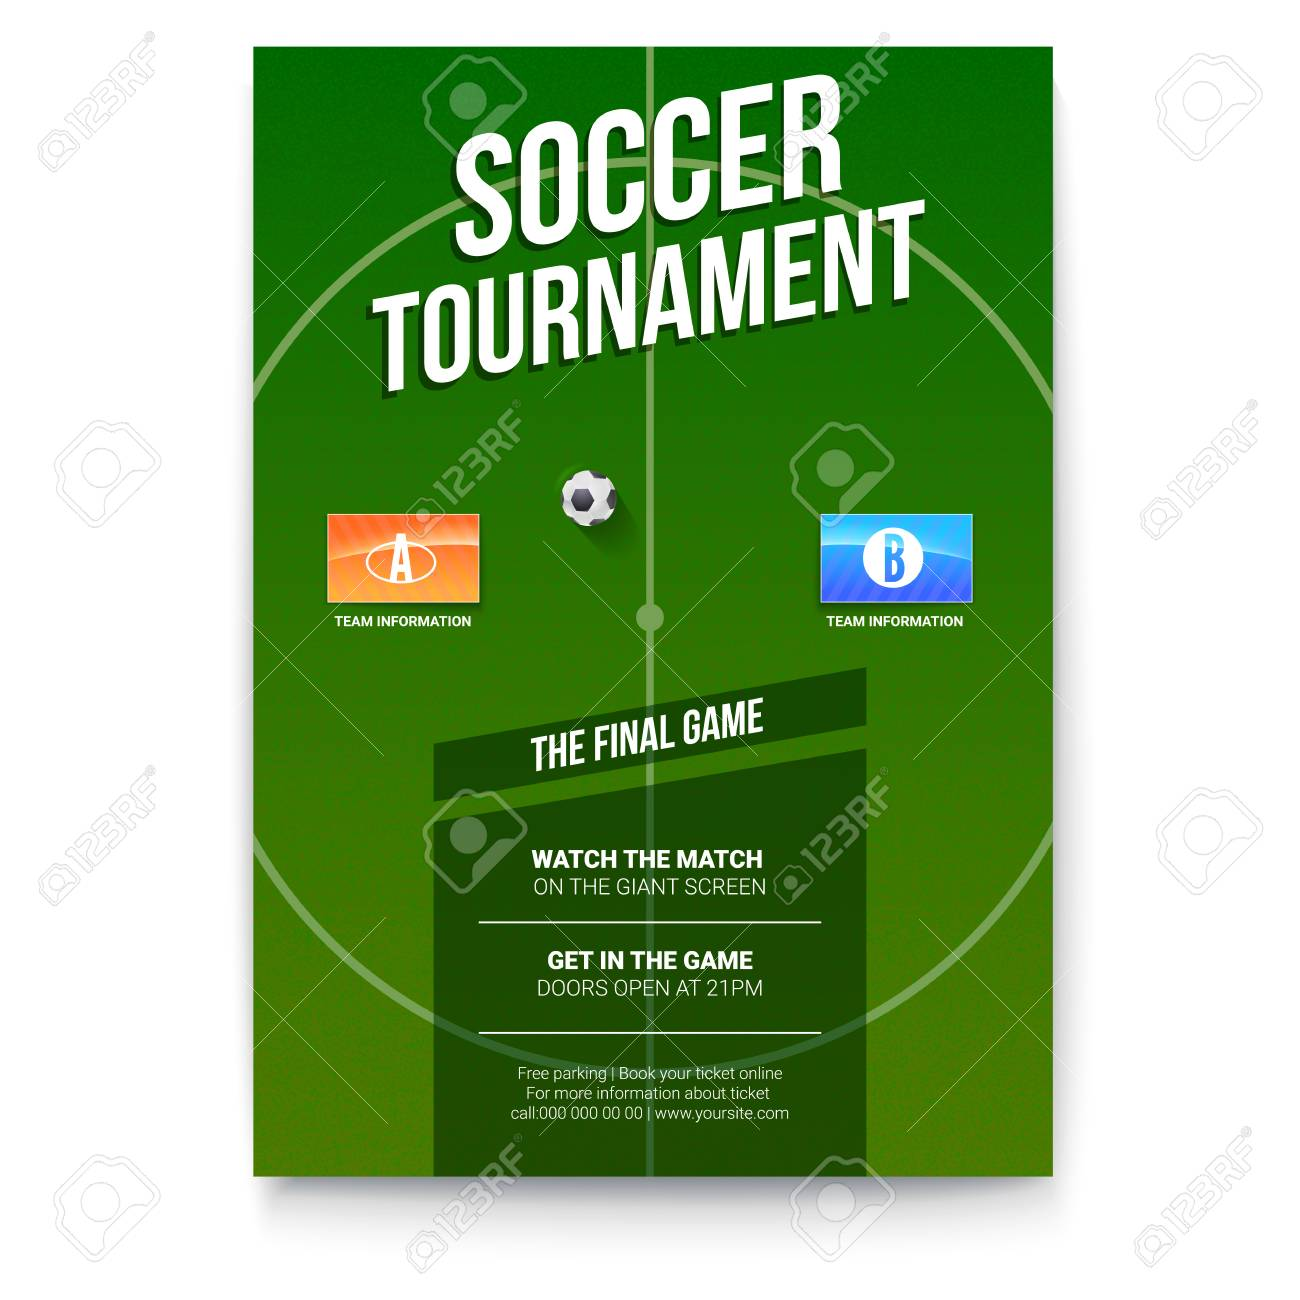 Soccer Football Poster With Text Design Template For Game